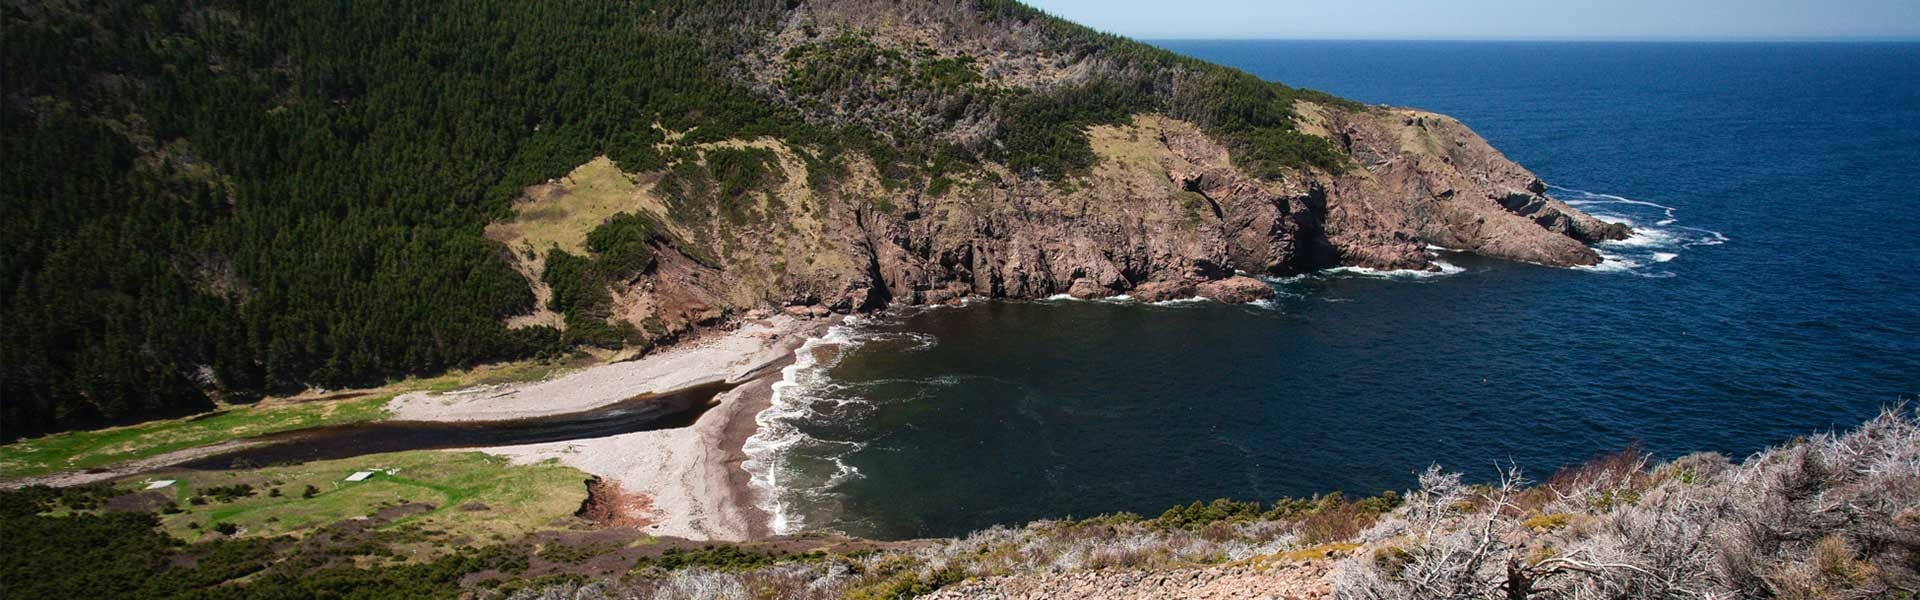 A small beach sits between two rocky coasts